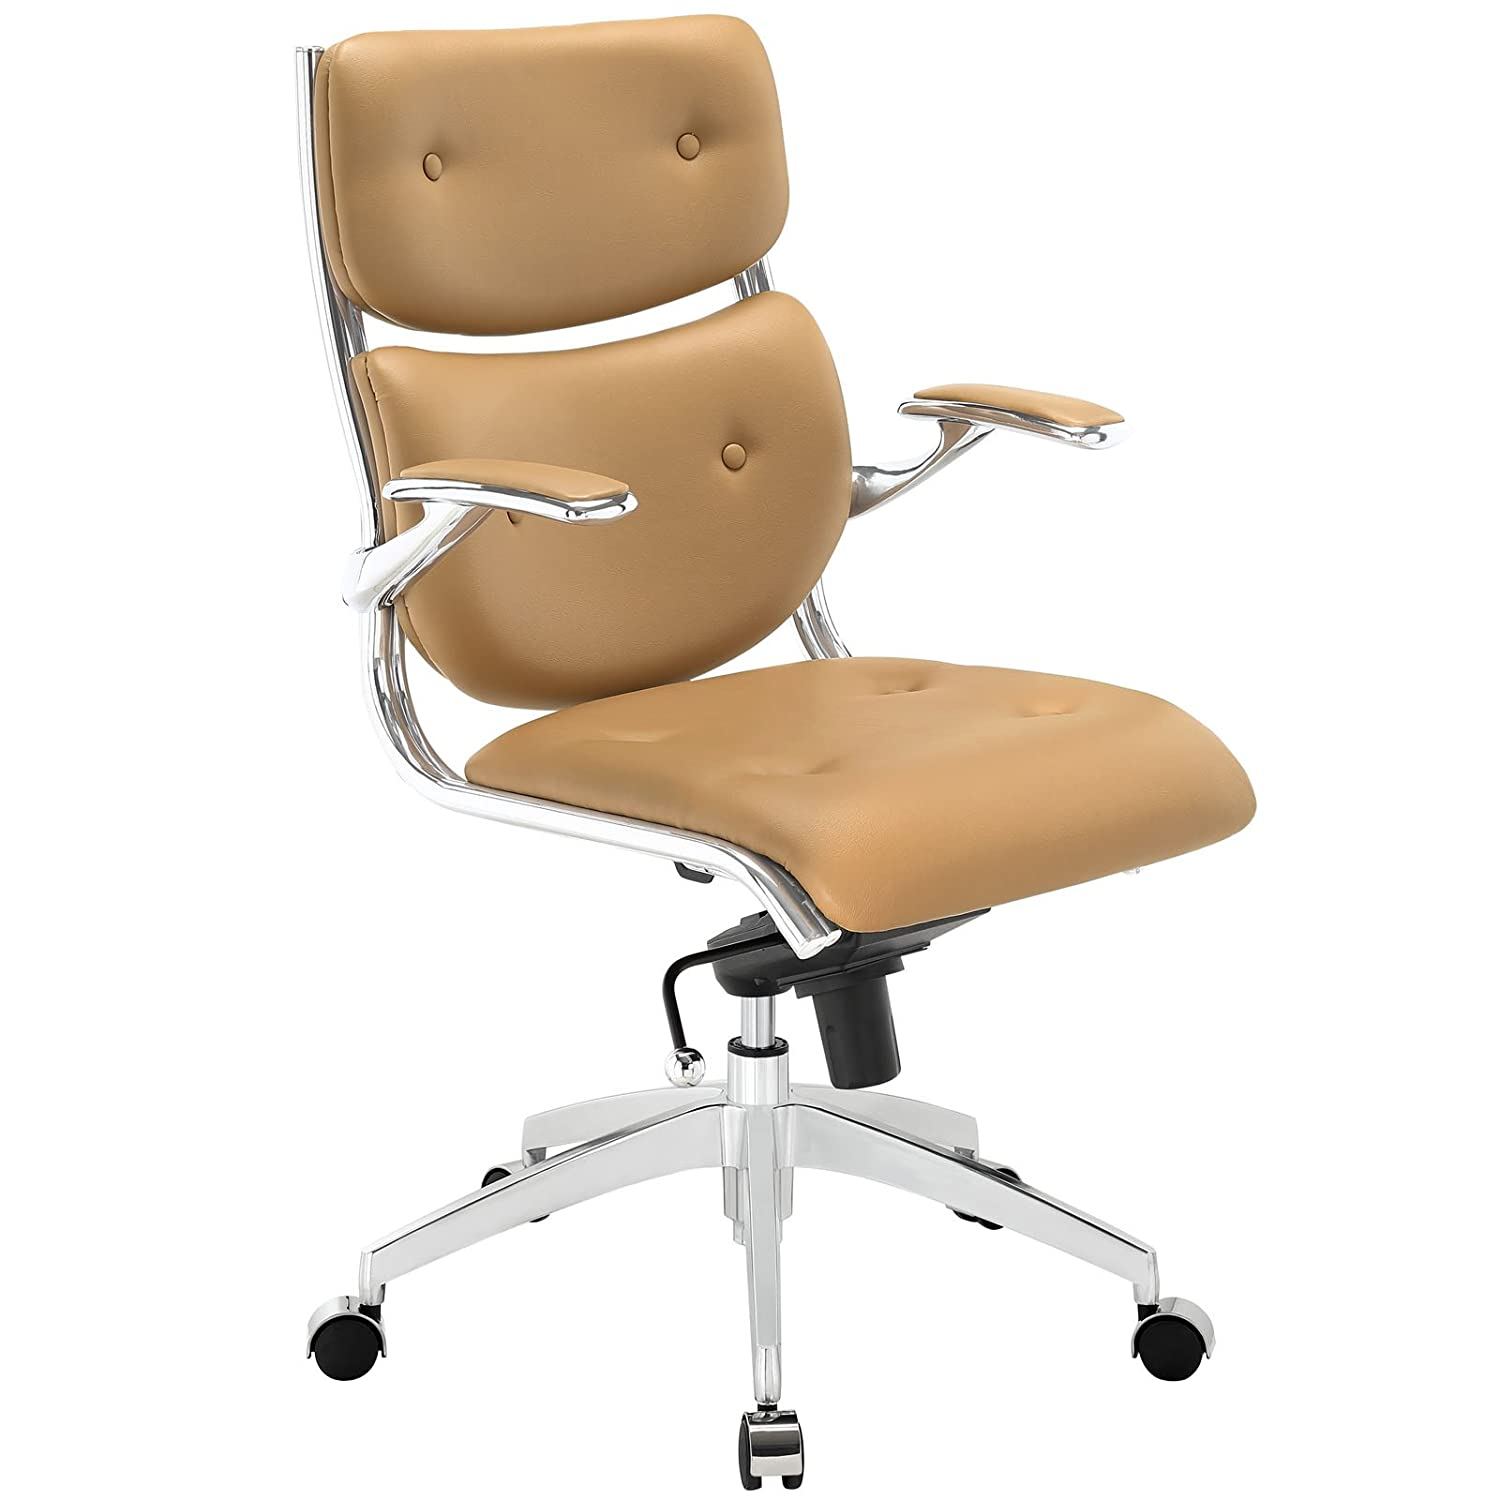 unico office chair. Unico Office Chair. Amazon.com: Modway Push Faux Leather Managerial Chair With